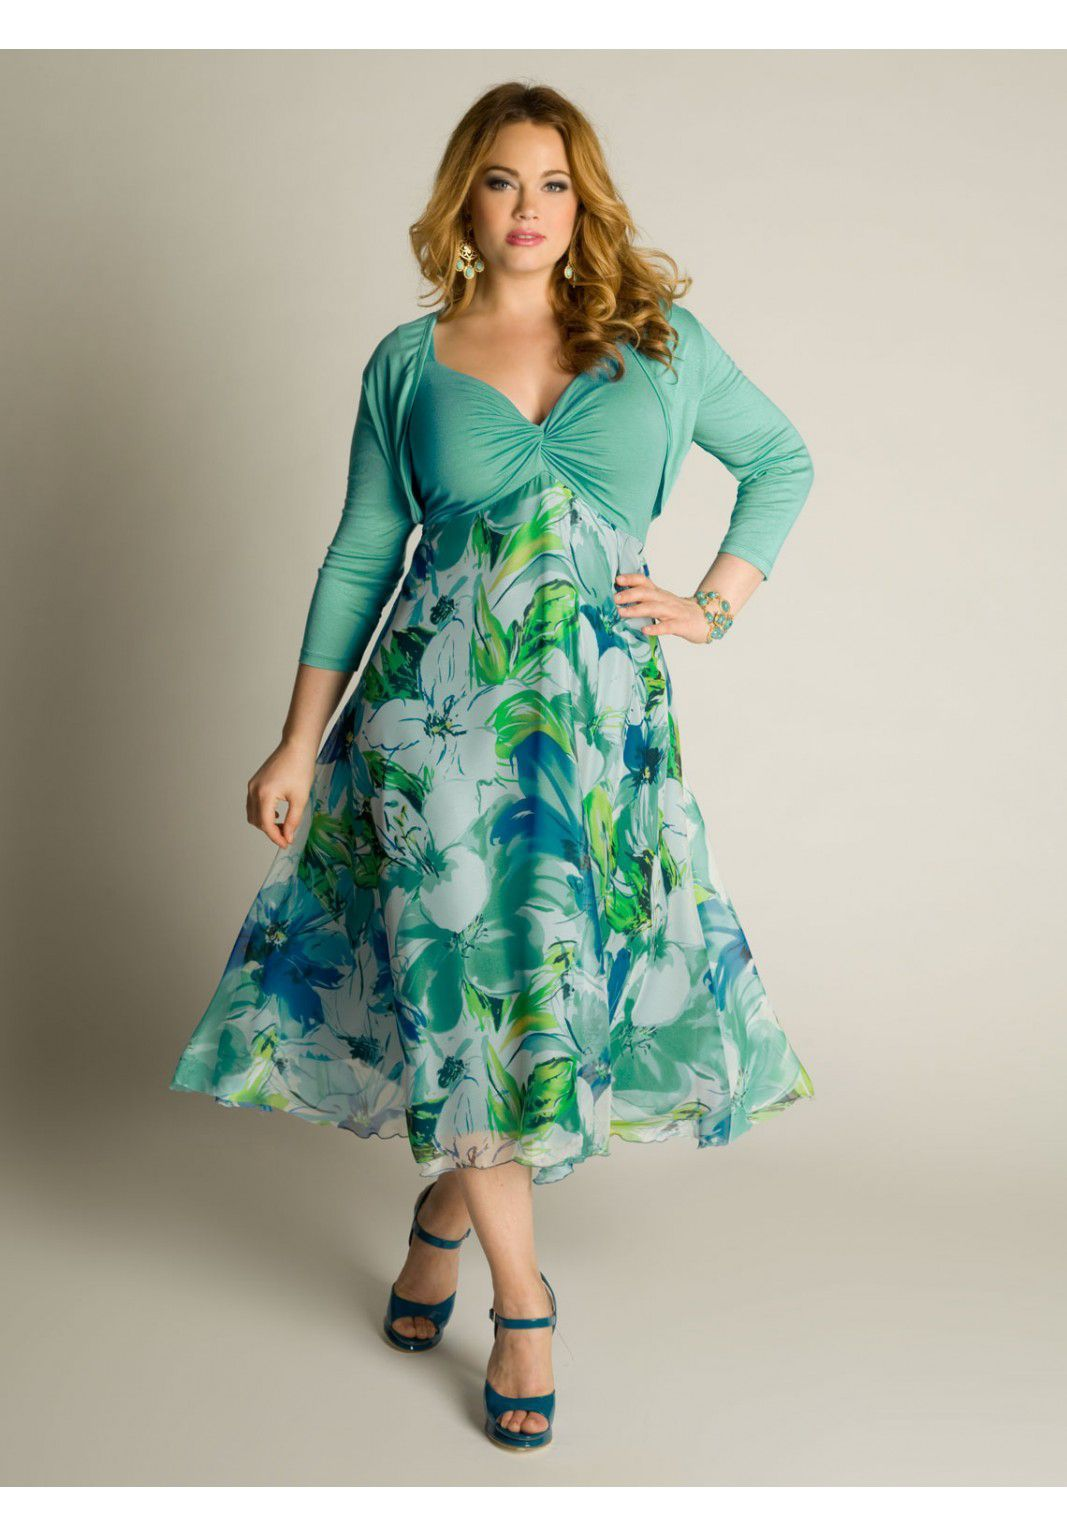 Plus Size Riella Sun Dress image - OOOooo for a spring ...